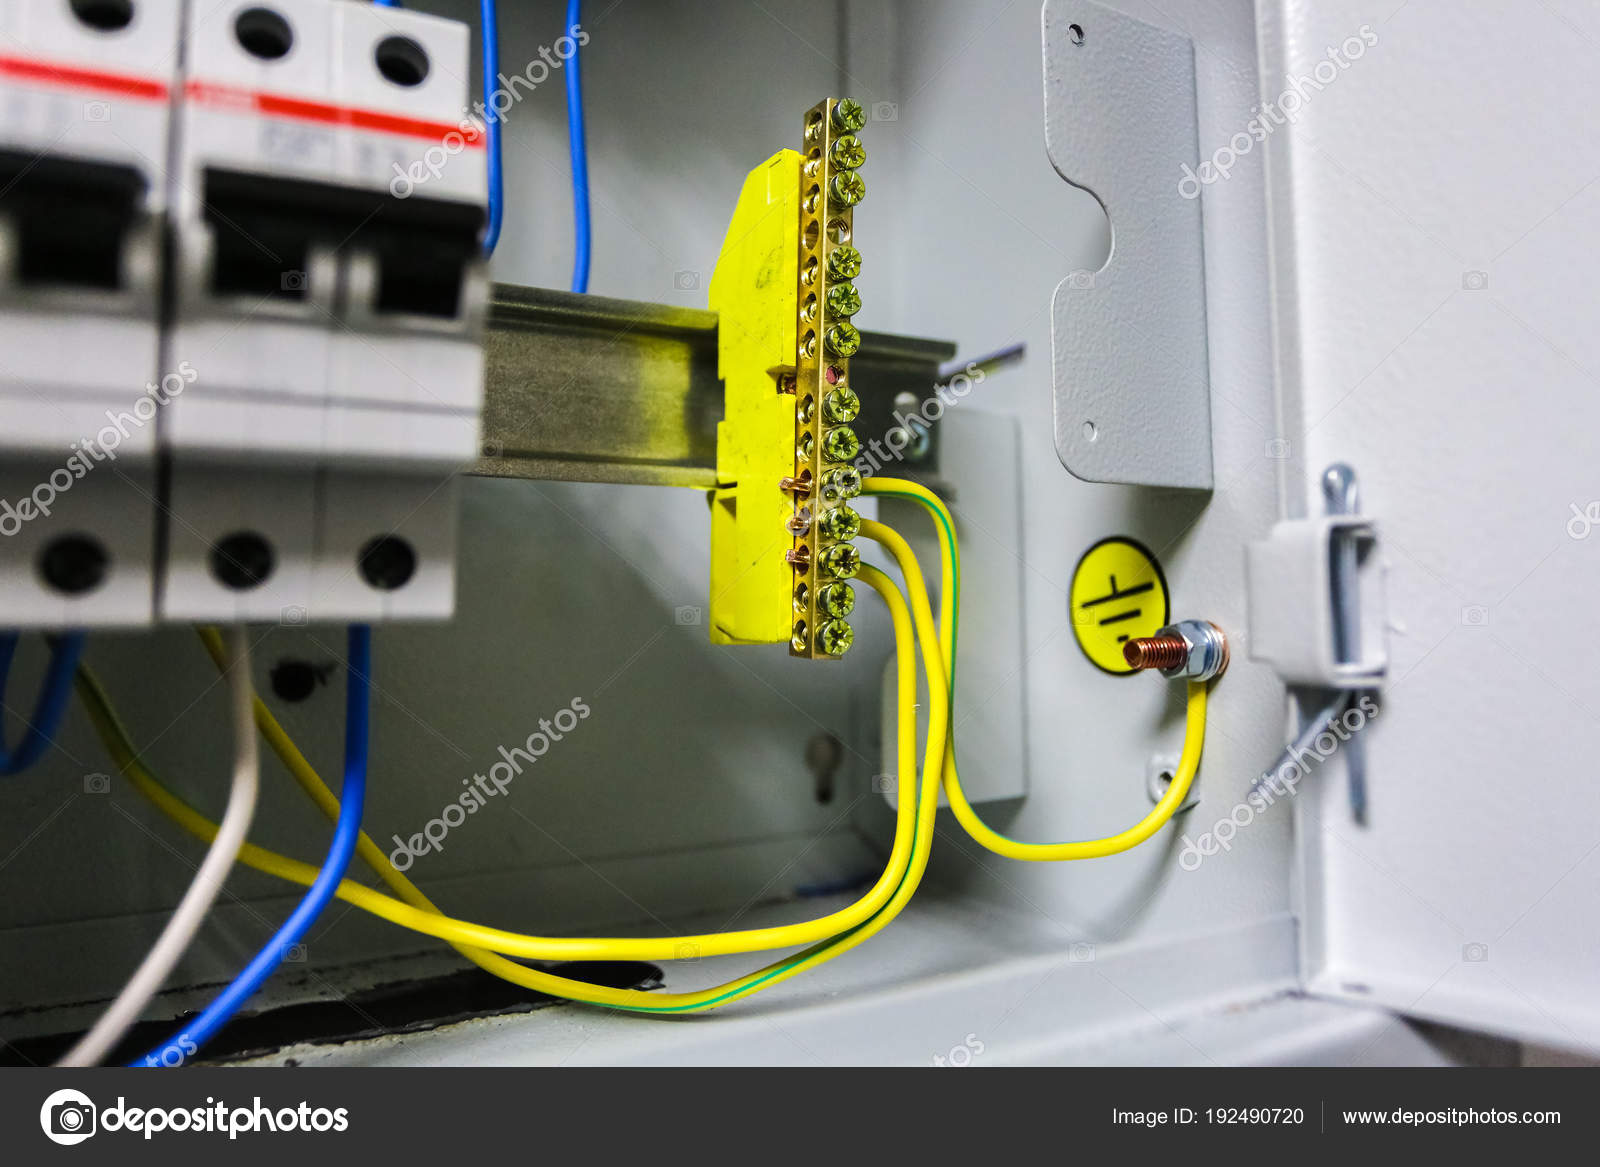 Electrical Ground Wires Is Connected To Copper Bar Or Earth Wiring Breaker Box Bonding In Metal Electric